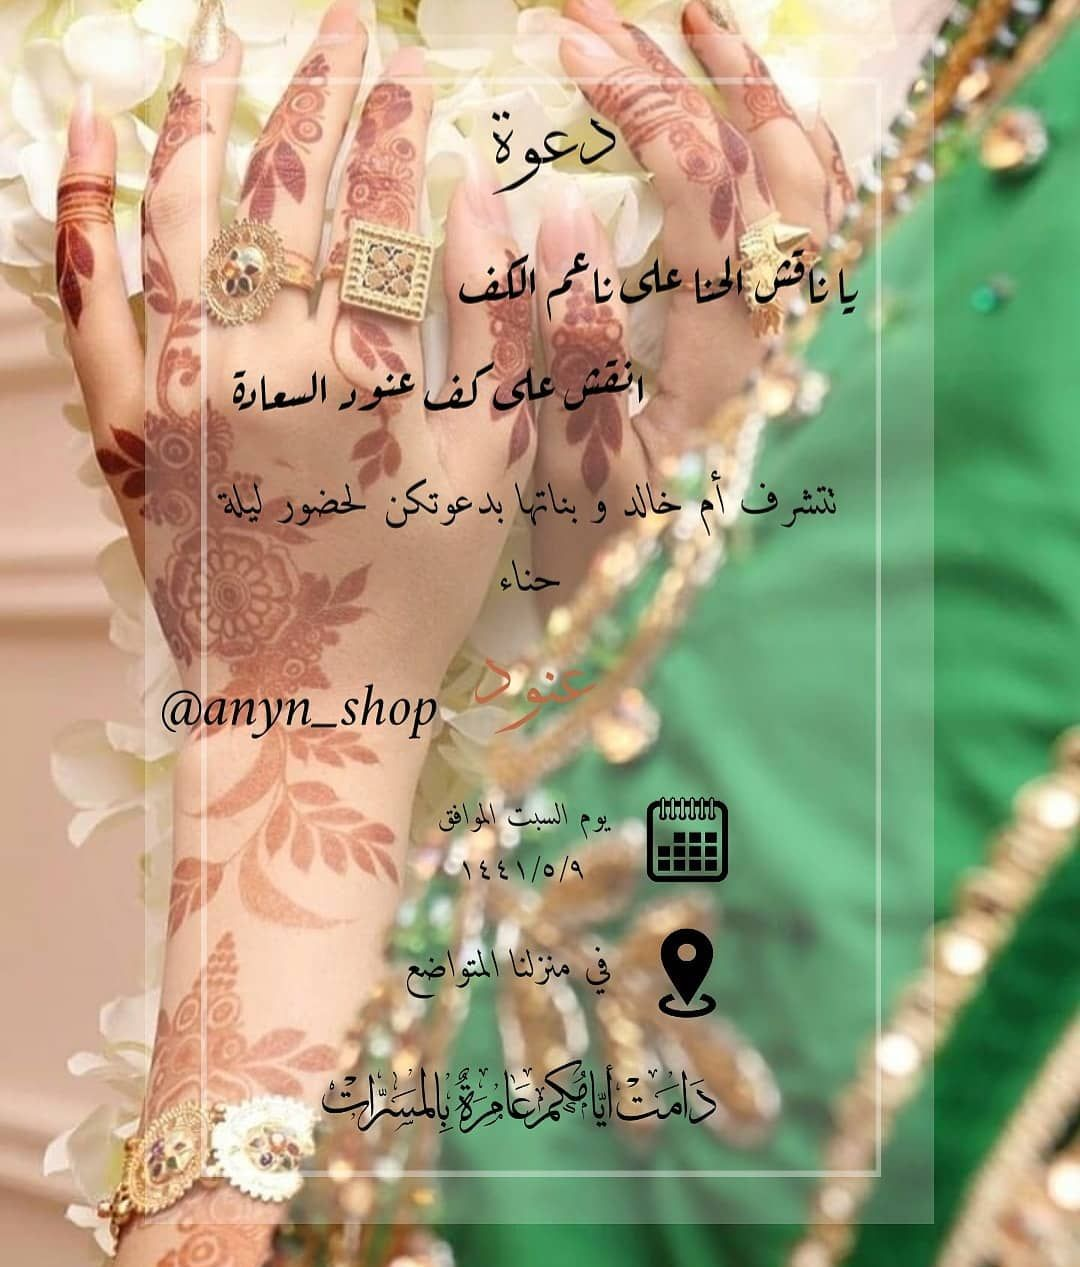 تصميم بطاقة دعوه On Instagram دعوة حناء عرض خاص الدعوة ب Wedding Invitation Background Digital Wedding Invitations Design Digital Wedding Invitations